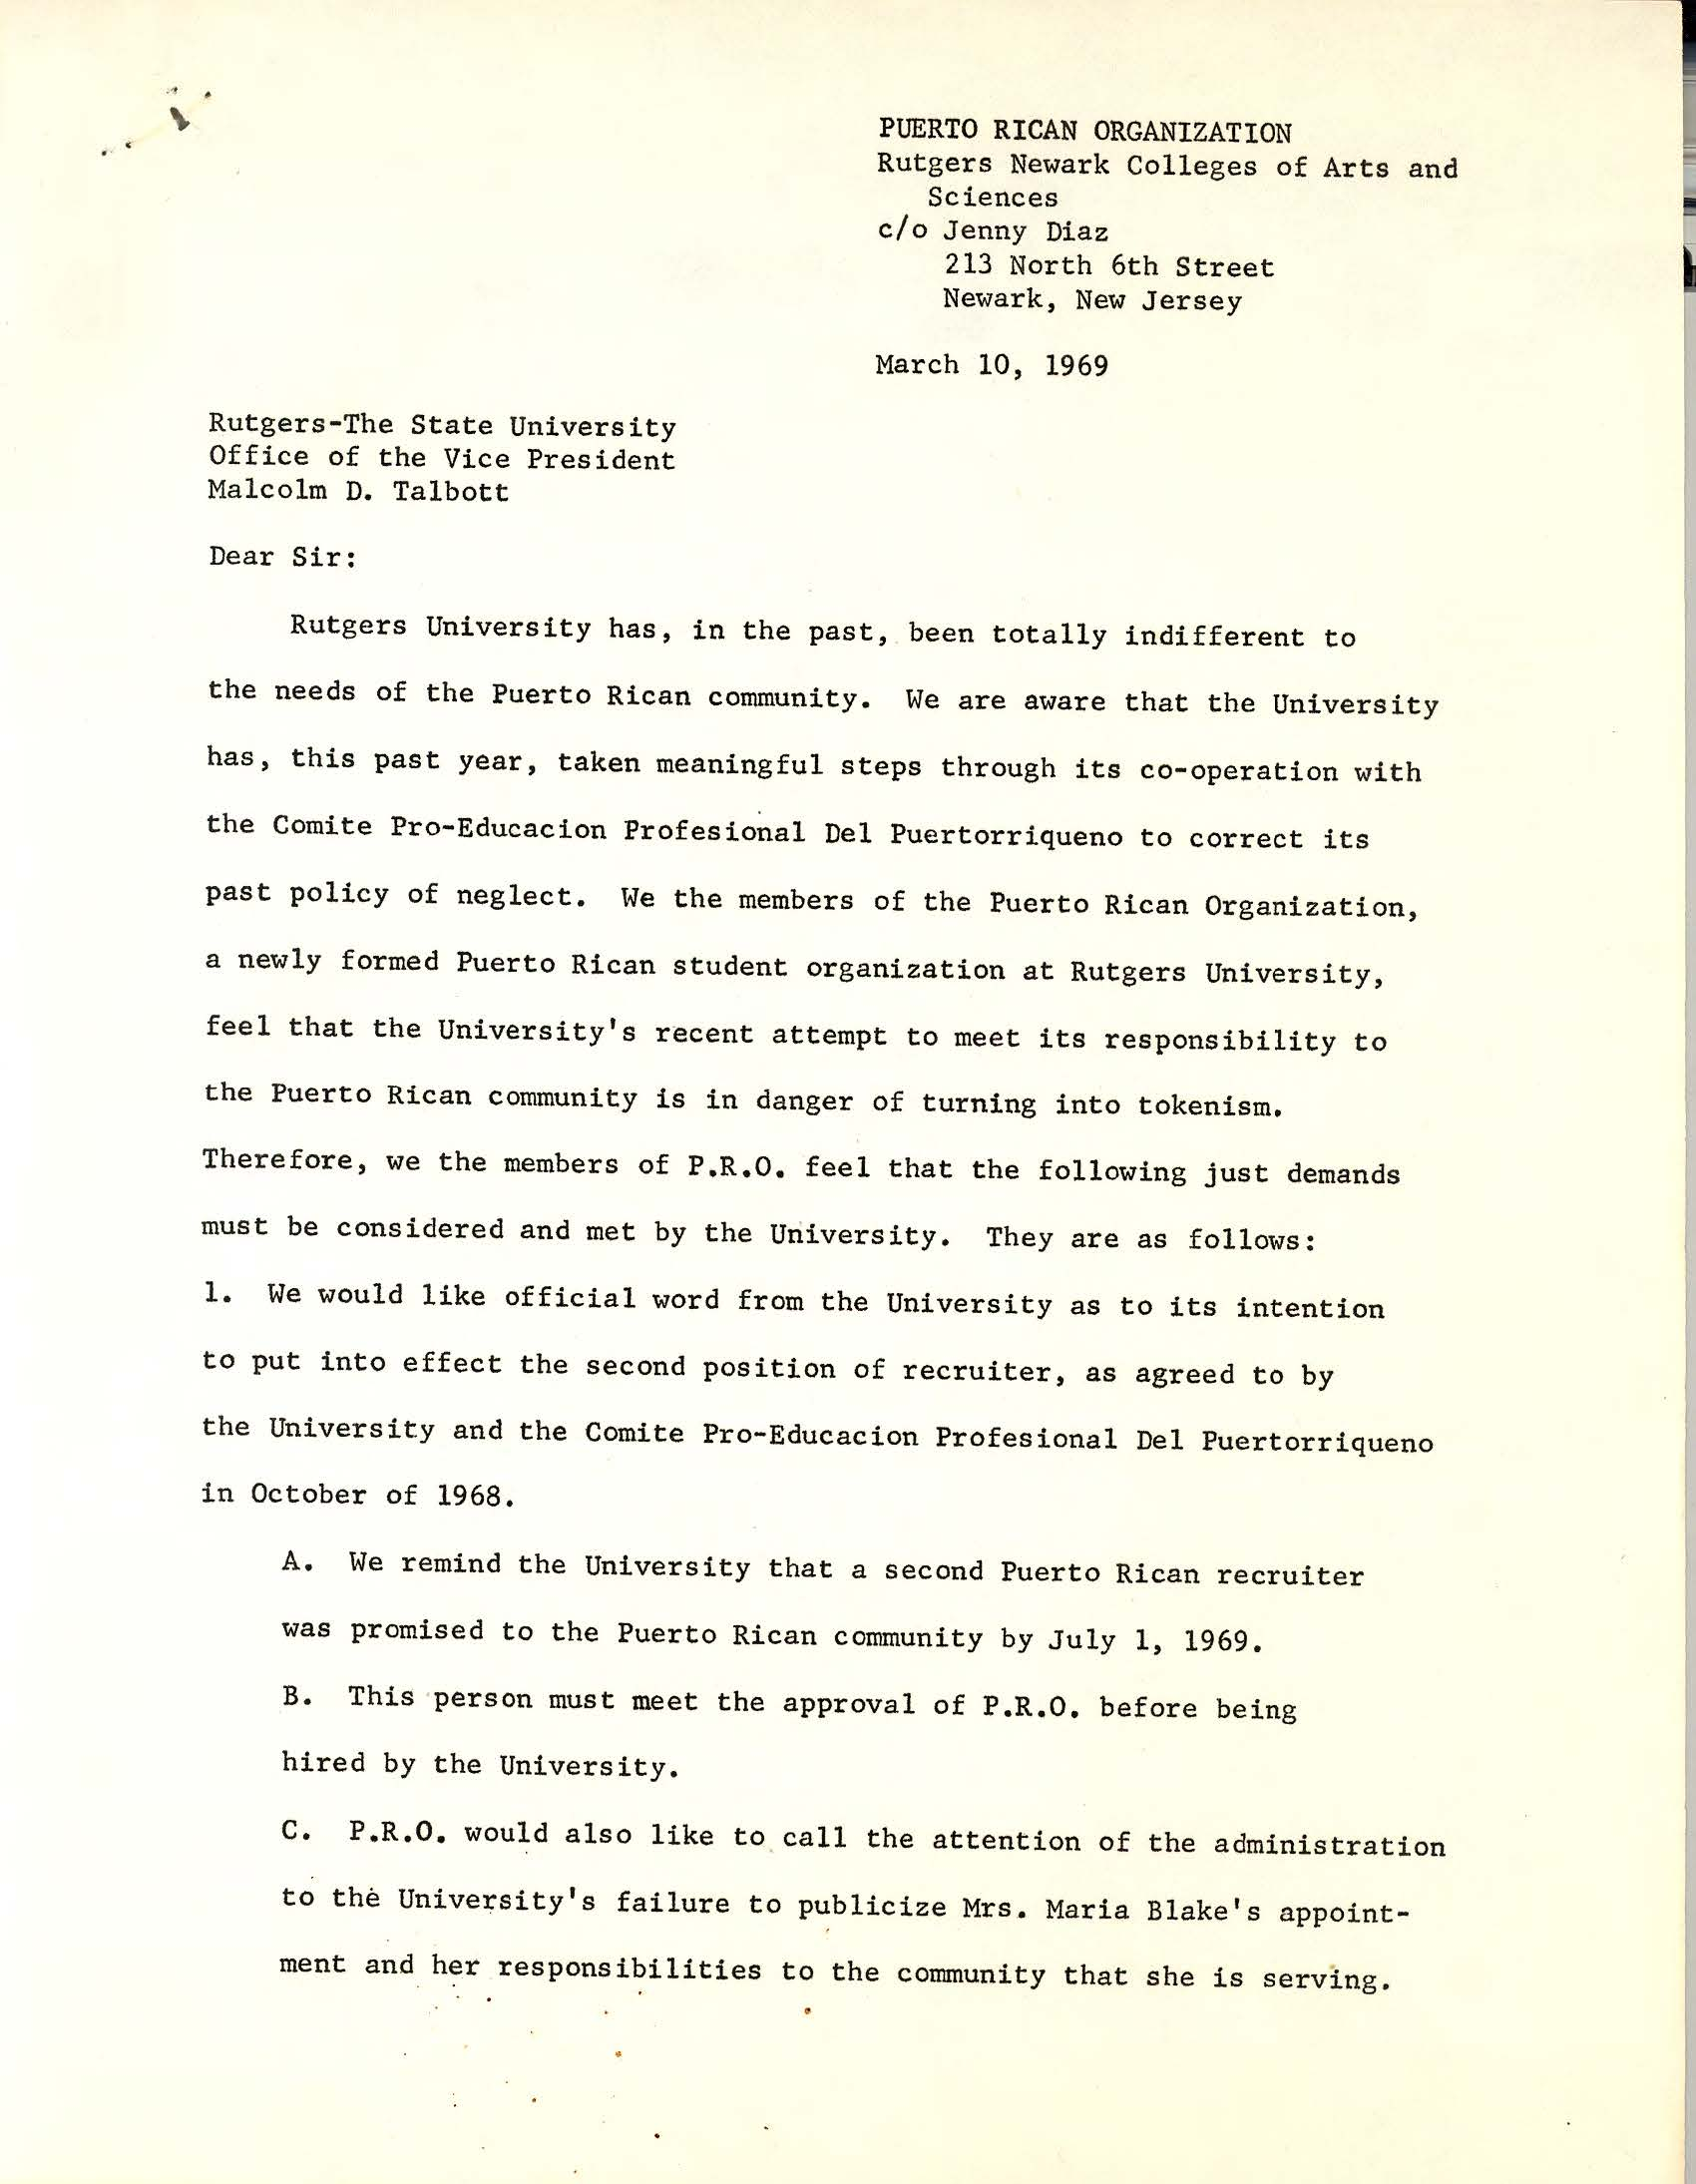 Letter from puerto rican organization to malcolm talbott march 10 letter from puerto rican organization to malcolm talbott march 10 1969 the north newark spiritdancerdesigns Gallery